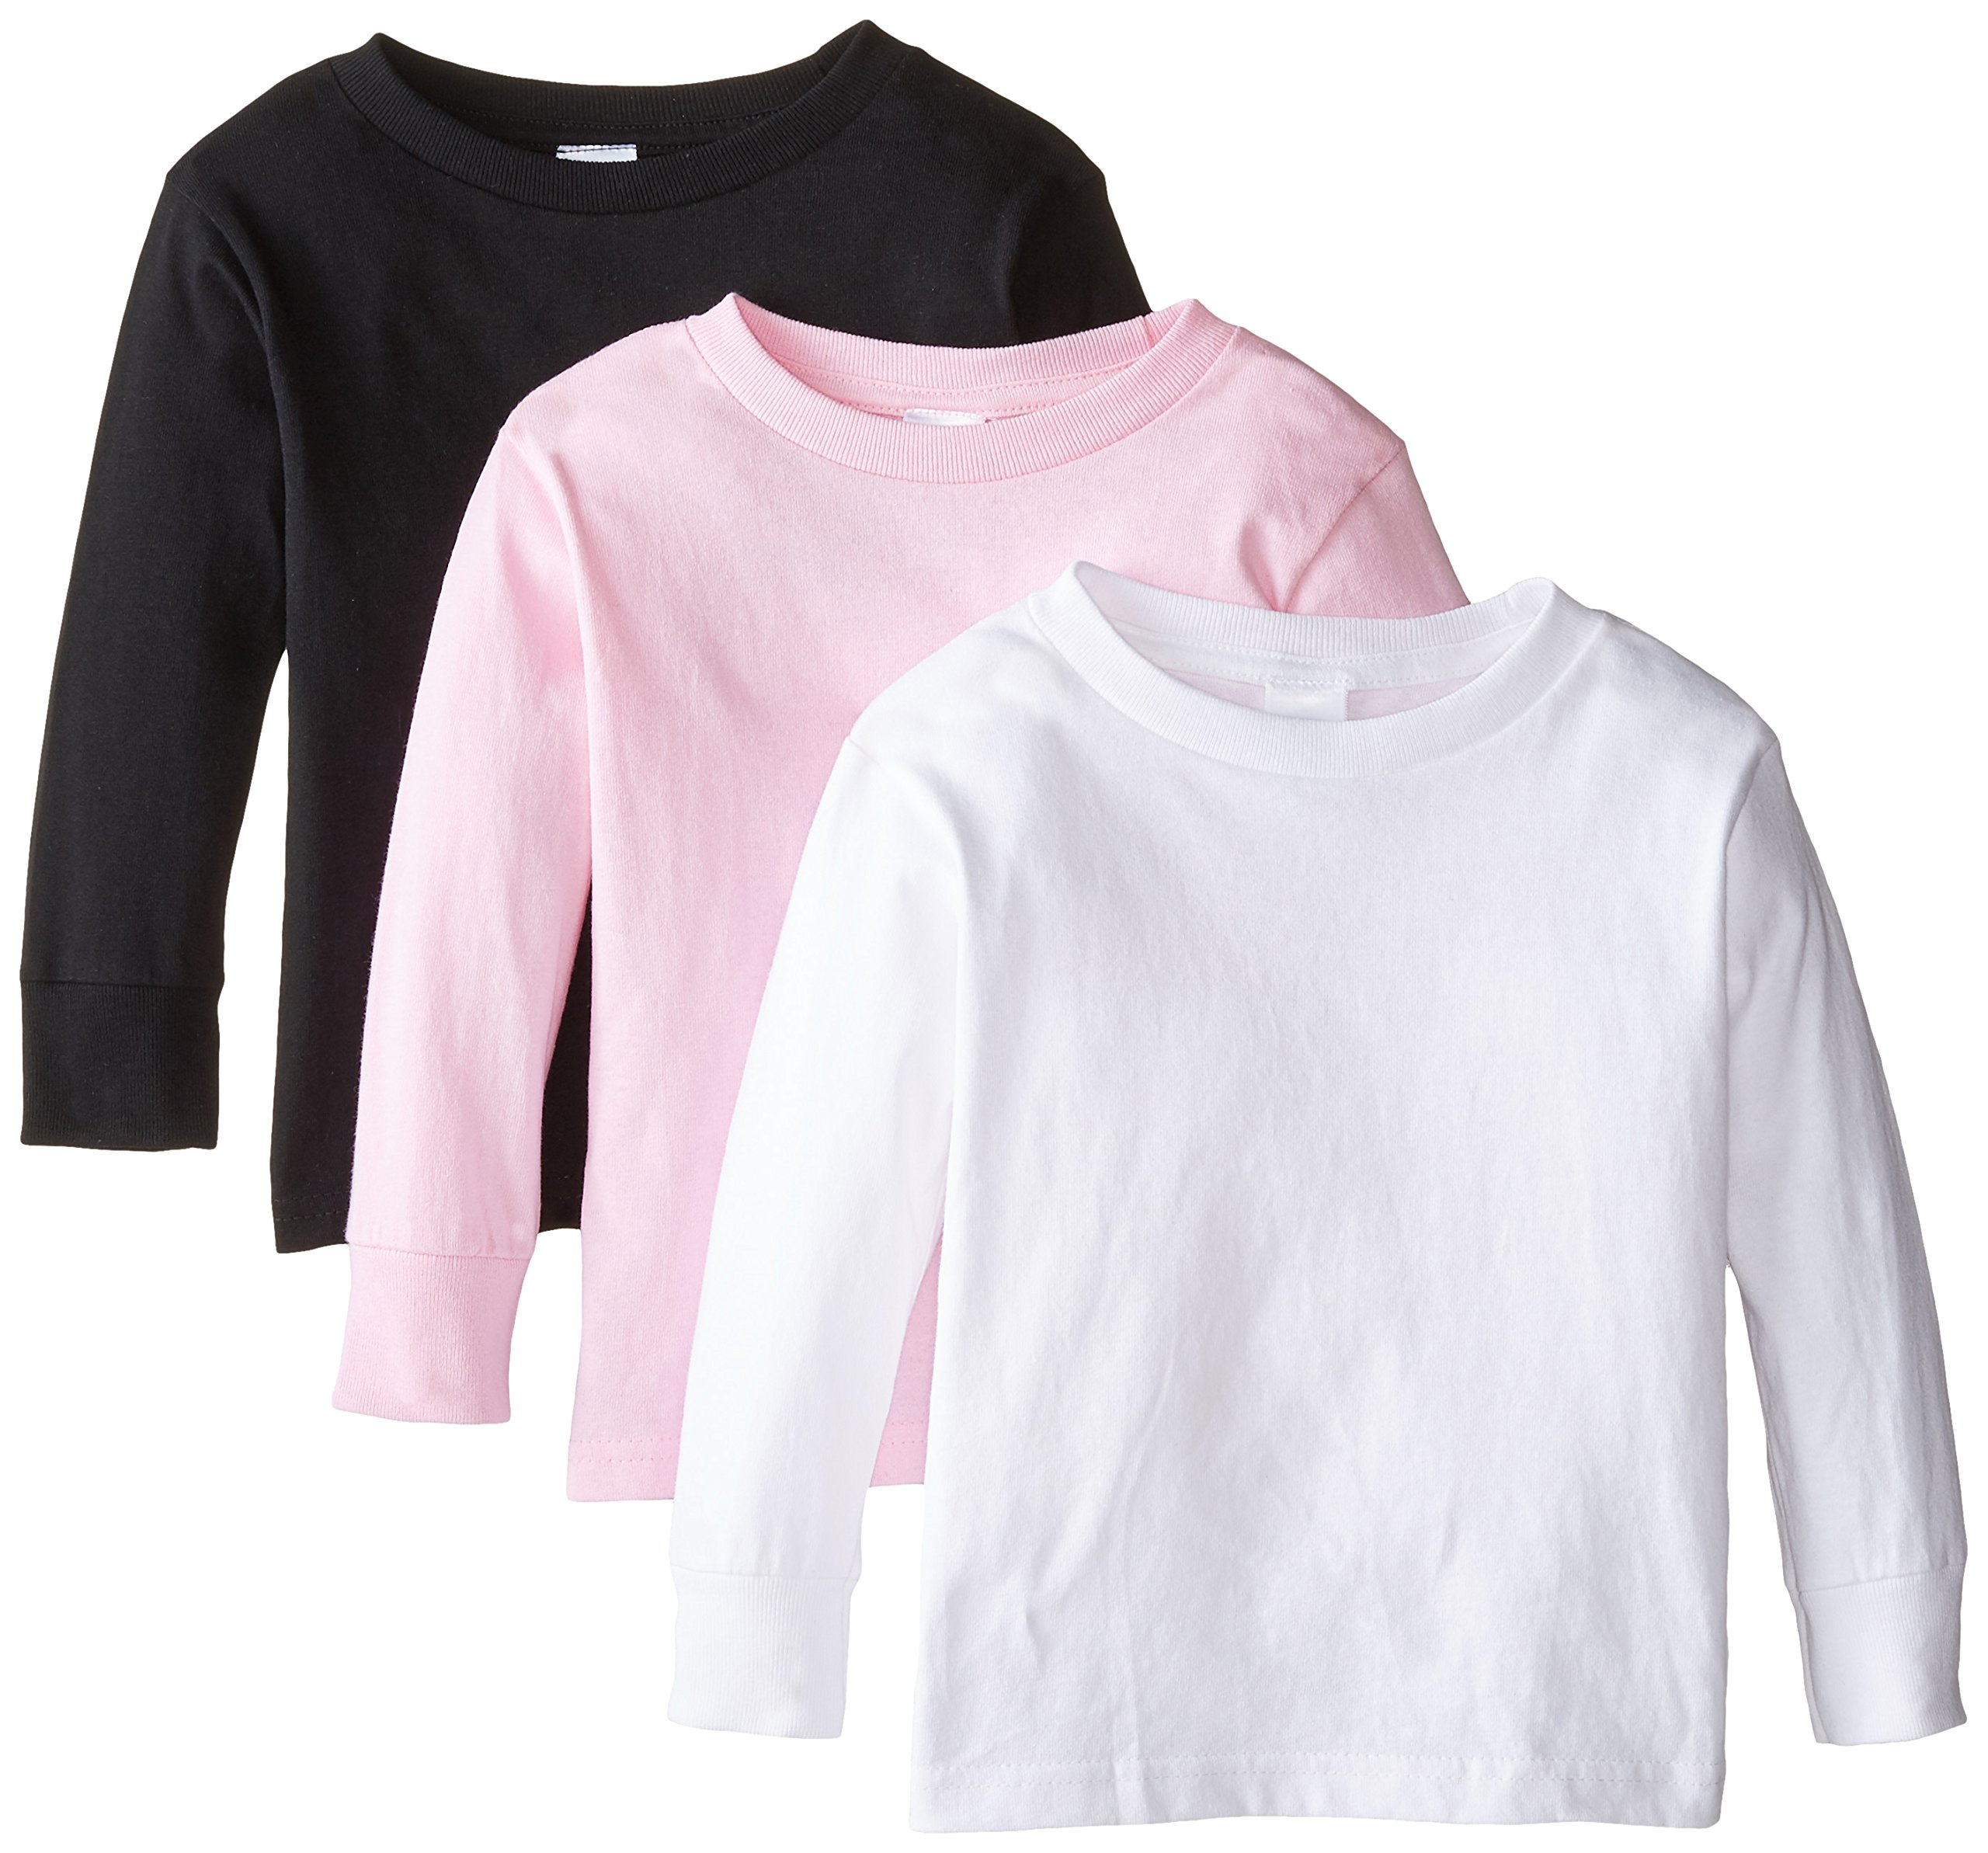 Clementine Little Girls' Toddler Long Sleeve Basic T-Shirt Three-Pack,White/Black/Pink,3T